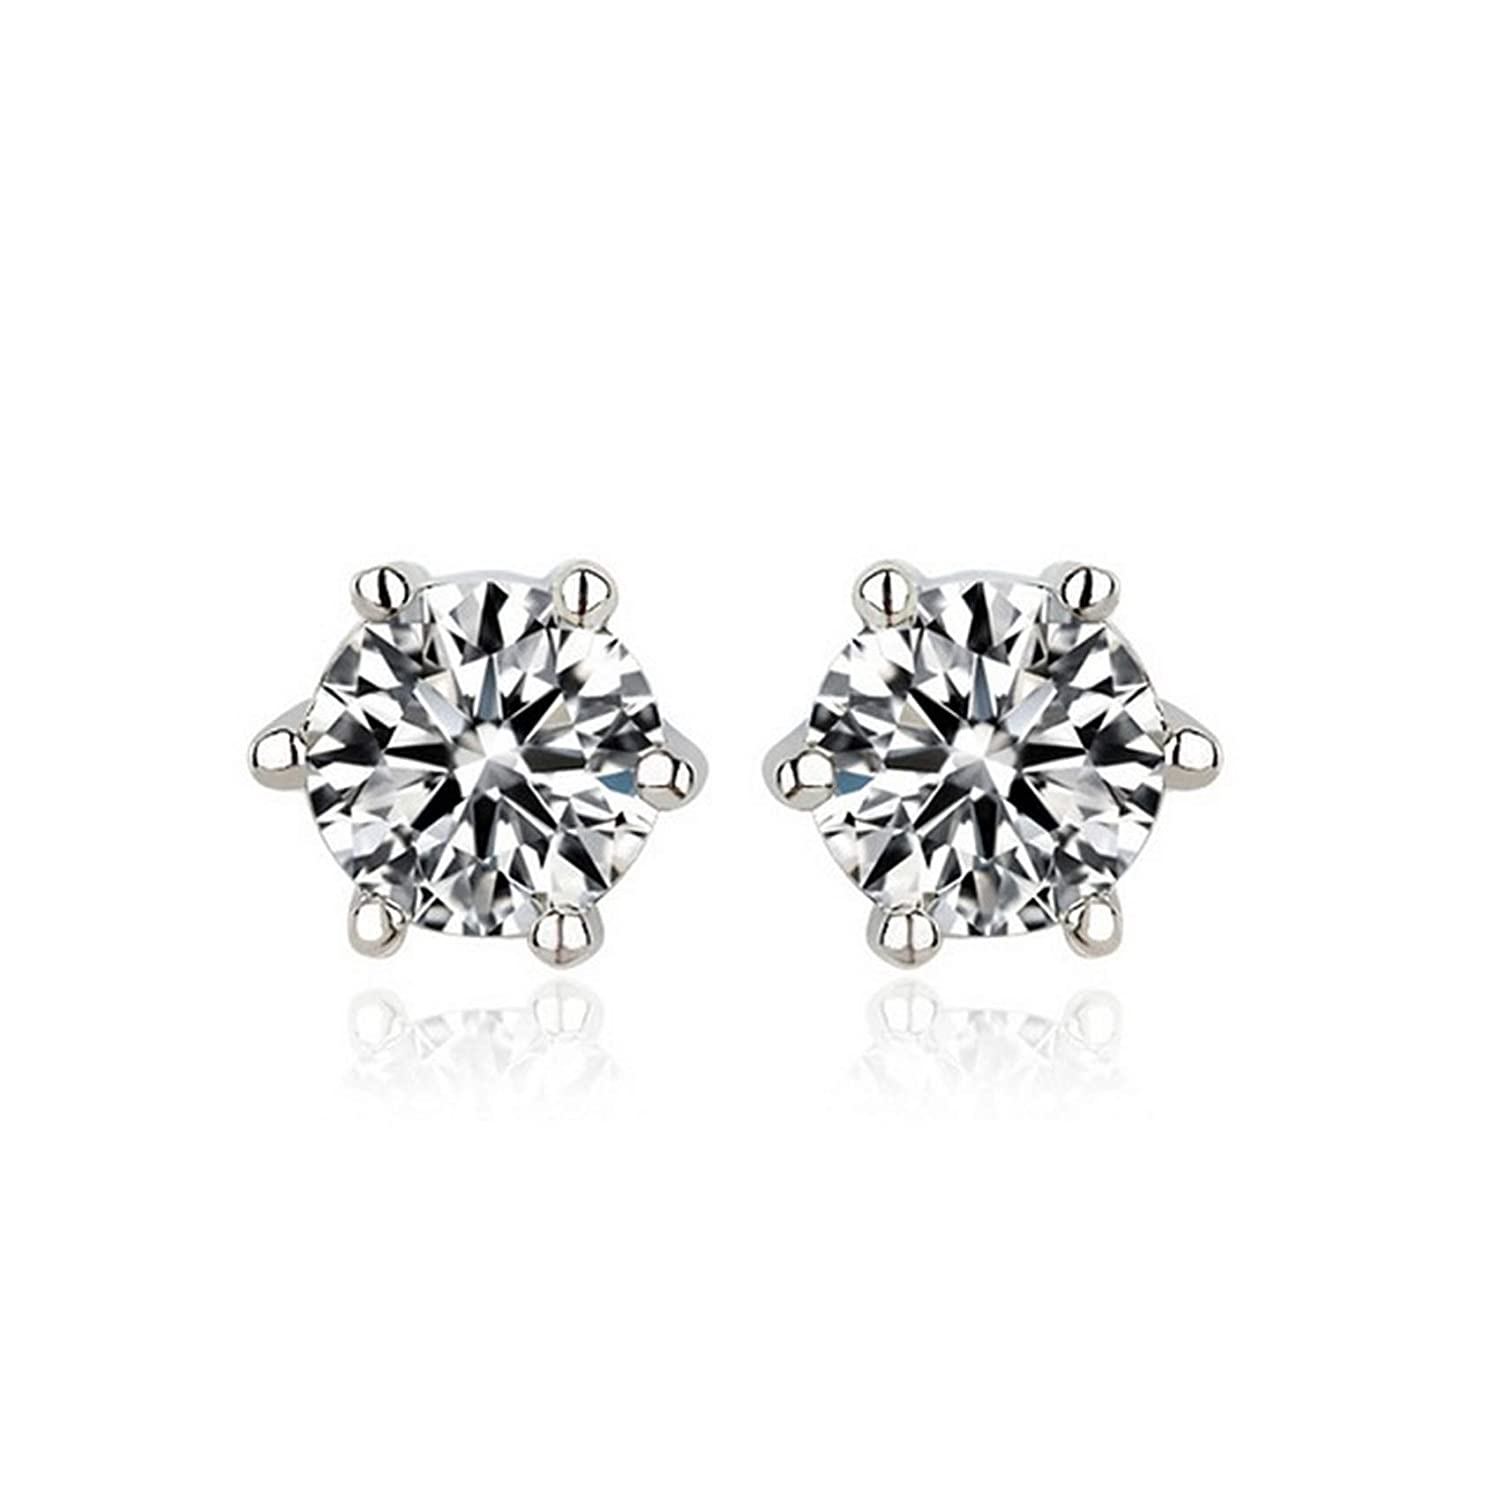 CS-DB Silver Sparkling Solitaire Clear CZ 6 Prongs Round Stud Charm Earrings